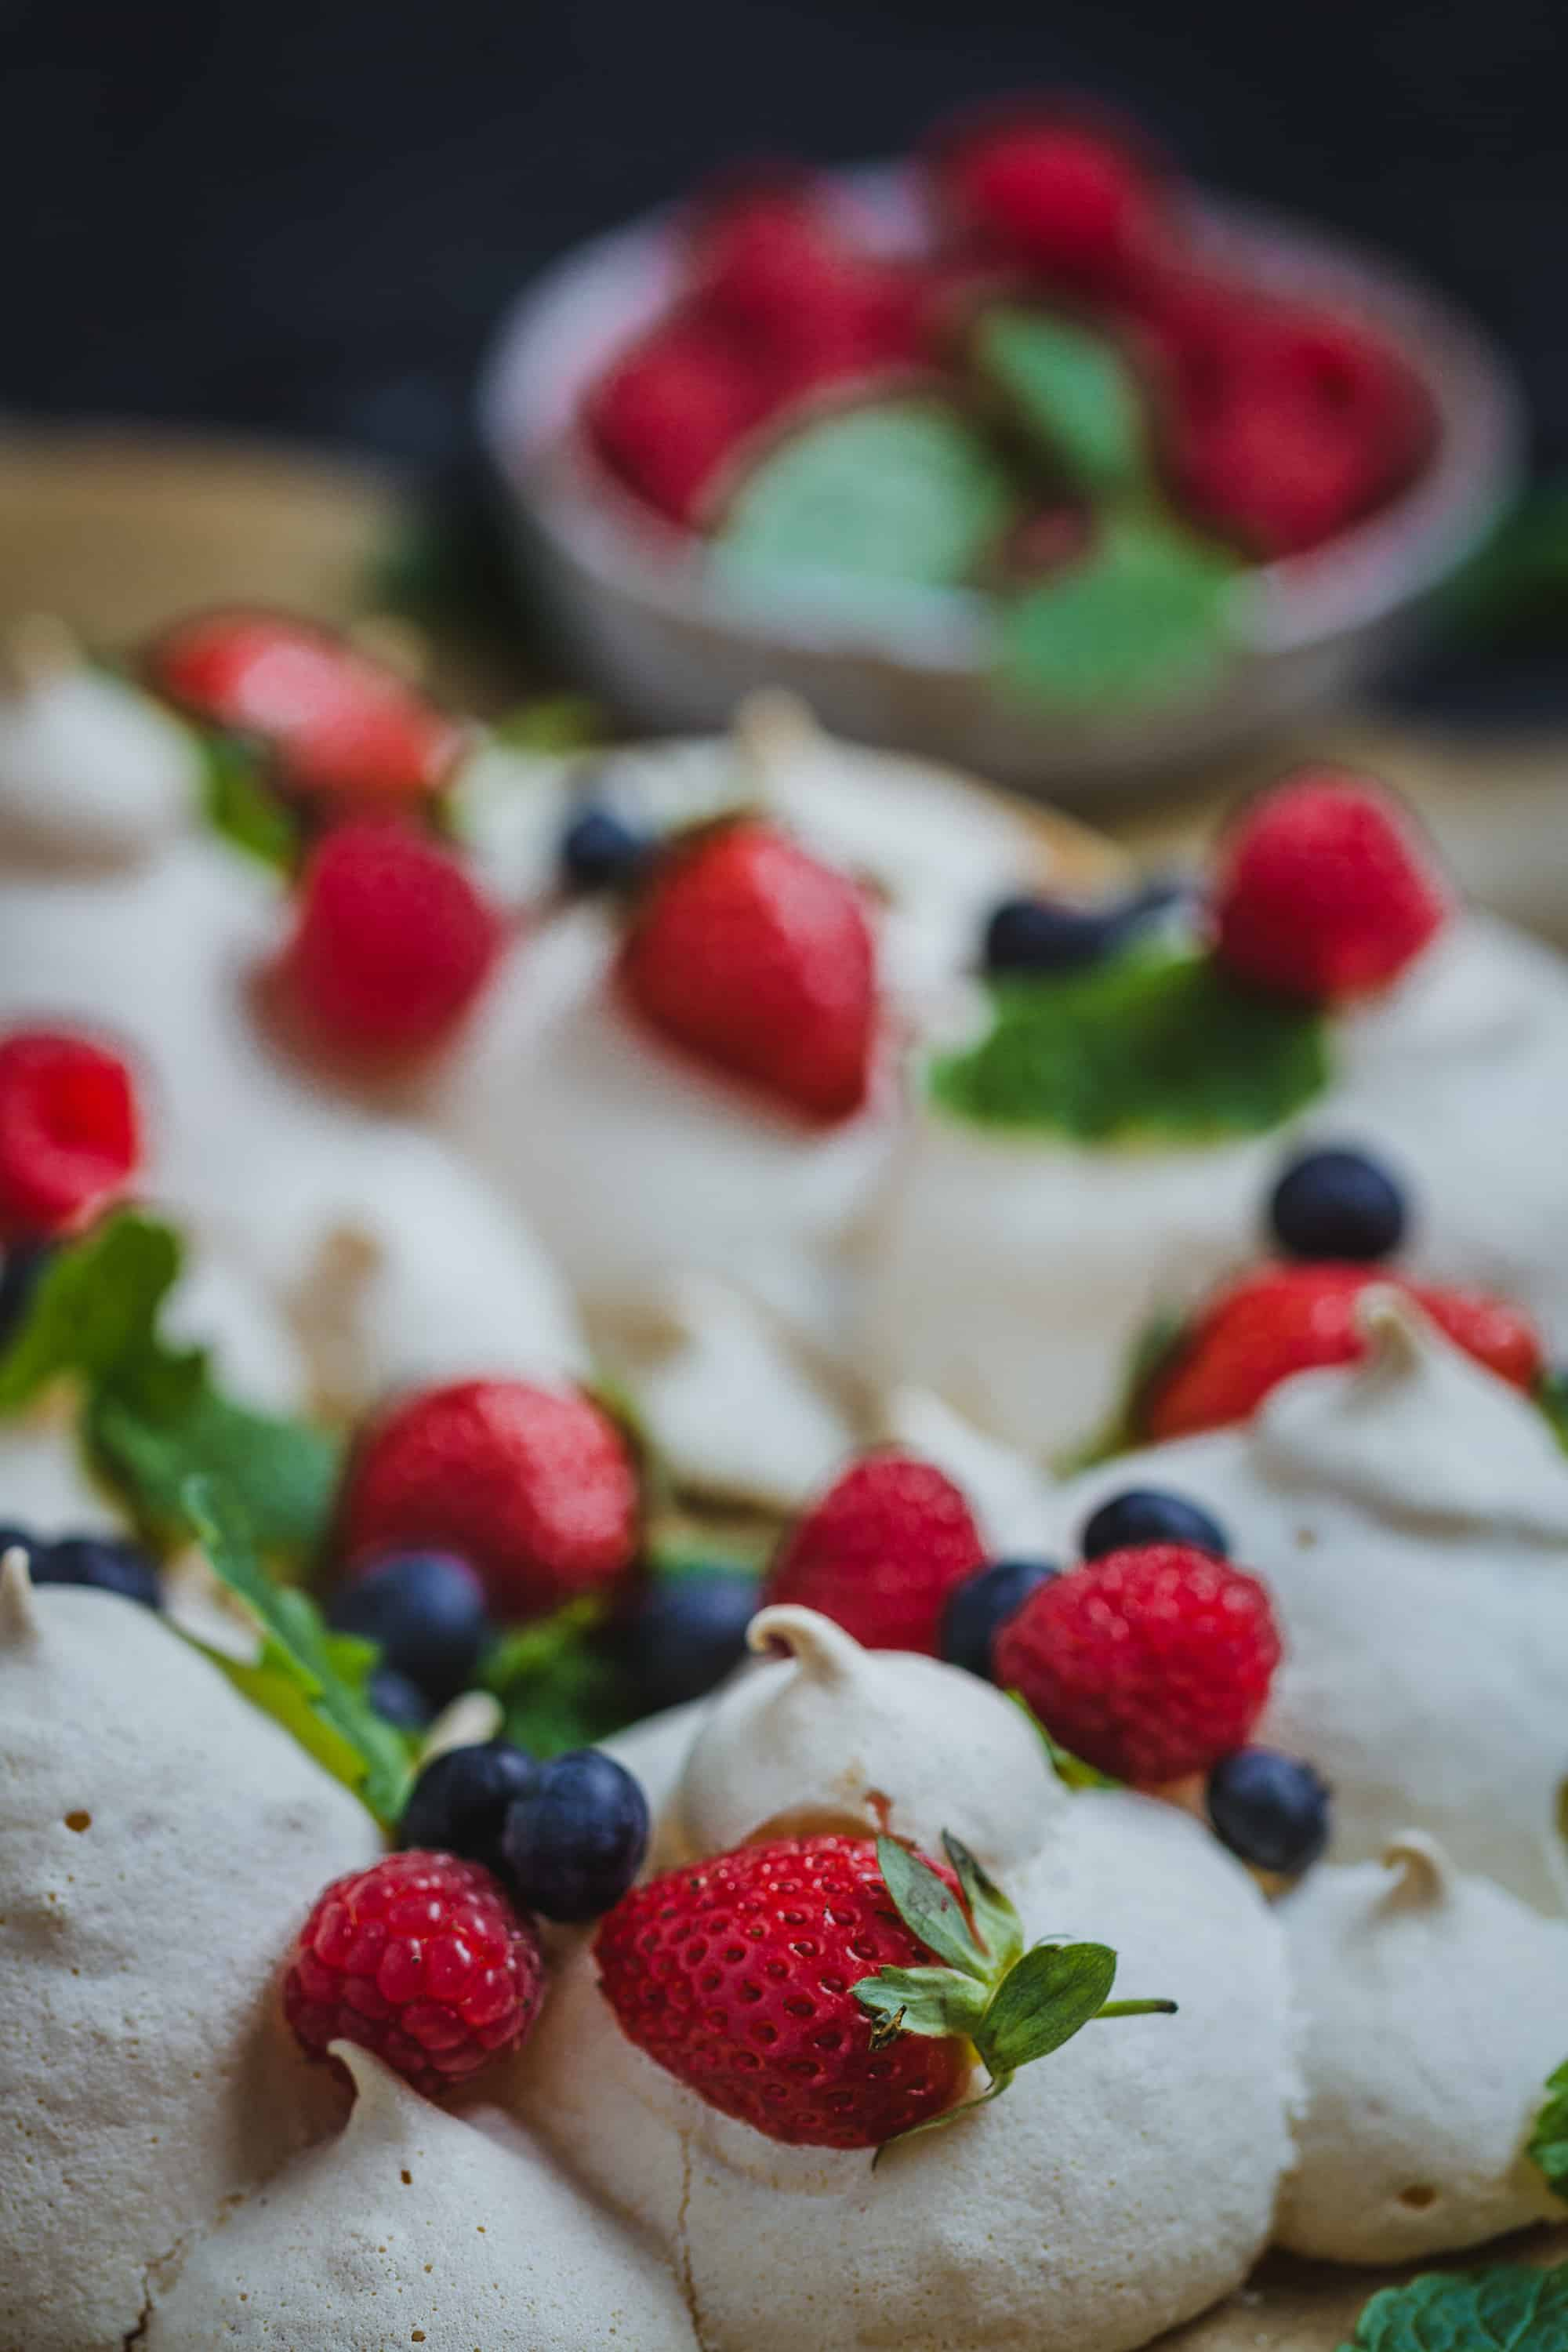 Merengue con frutos rojos